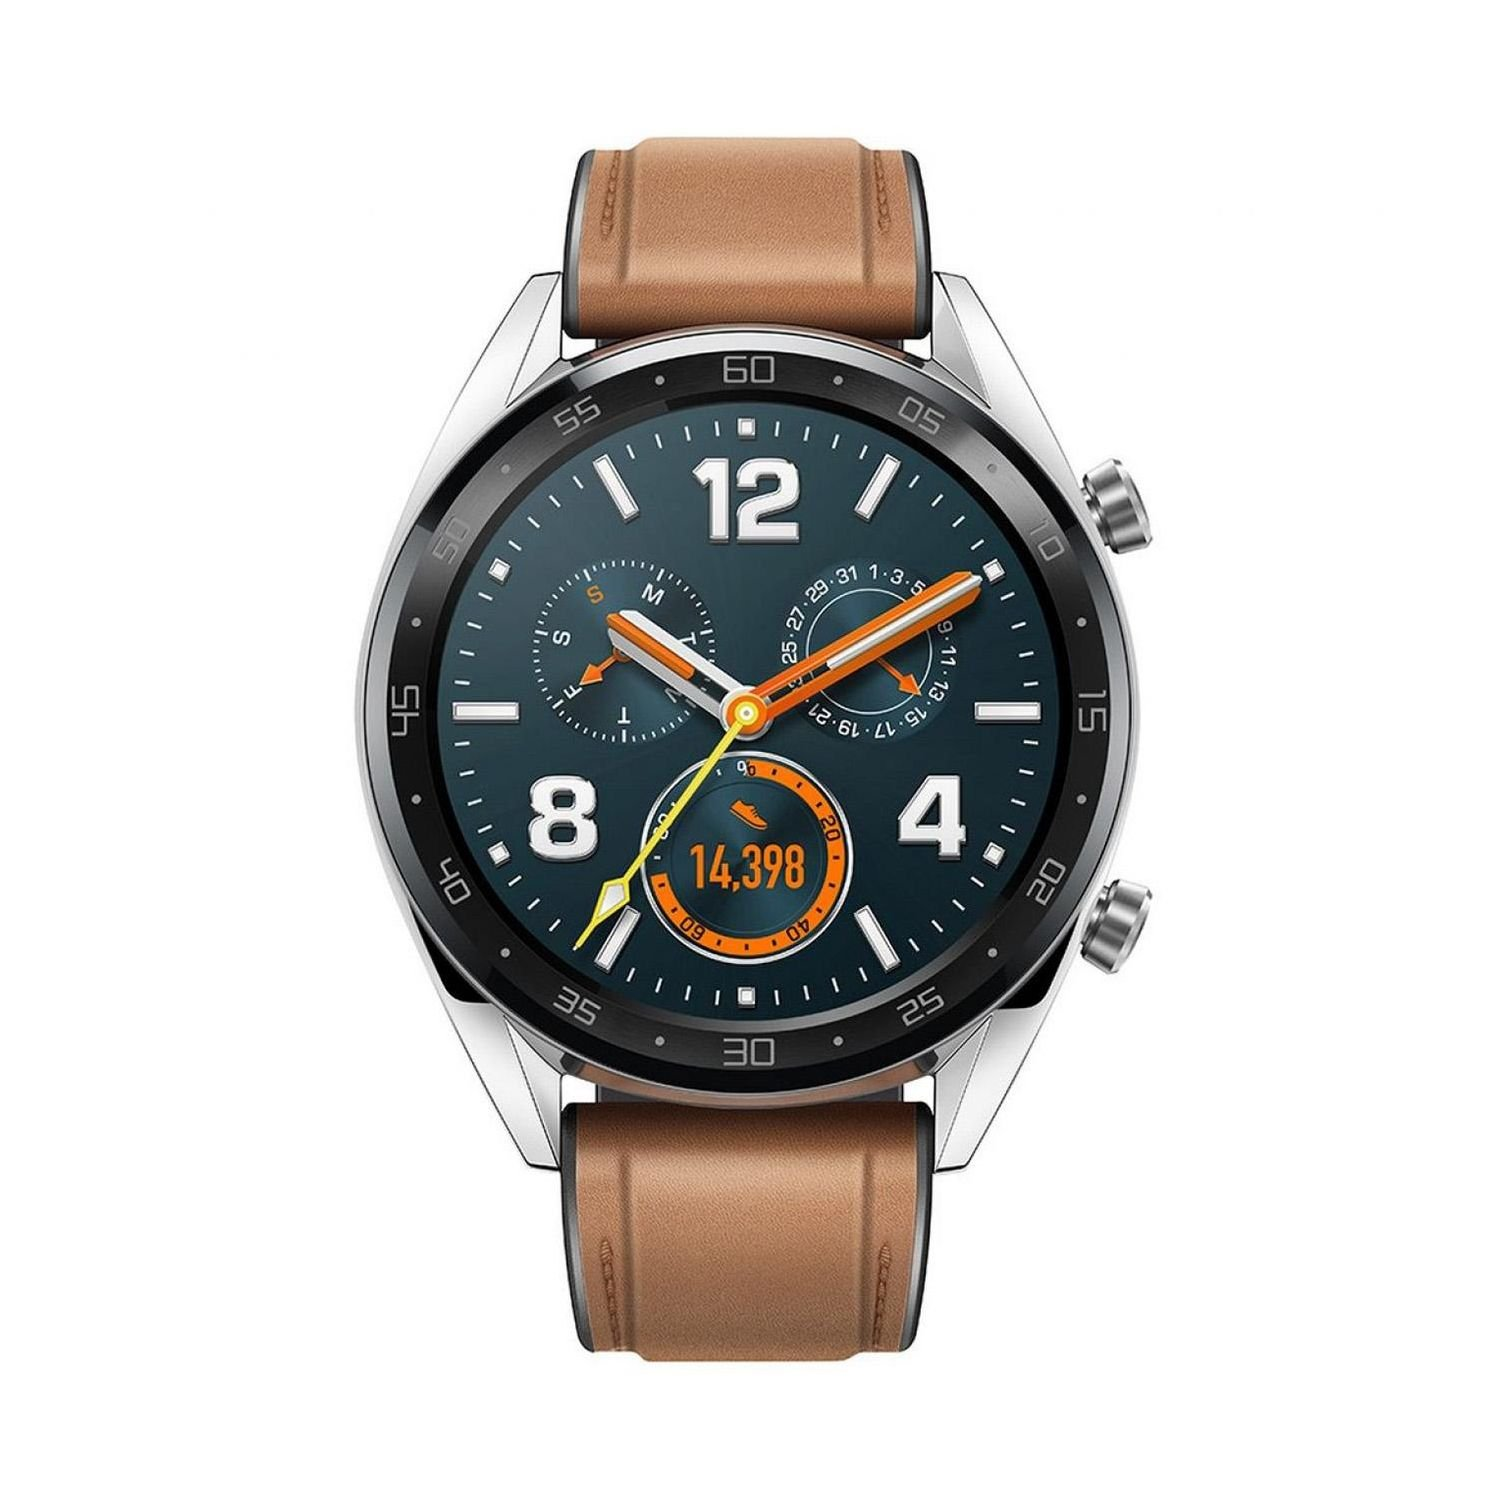 Smartwatch Huawei Gt Classic Smartwatches Wearables Dott Pt